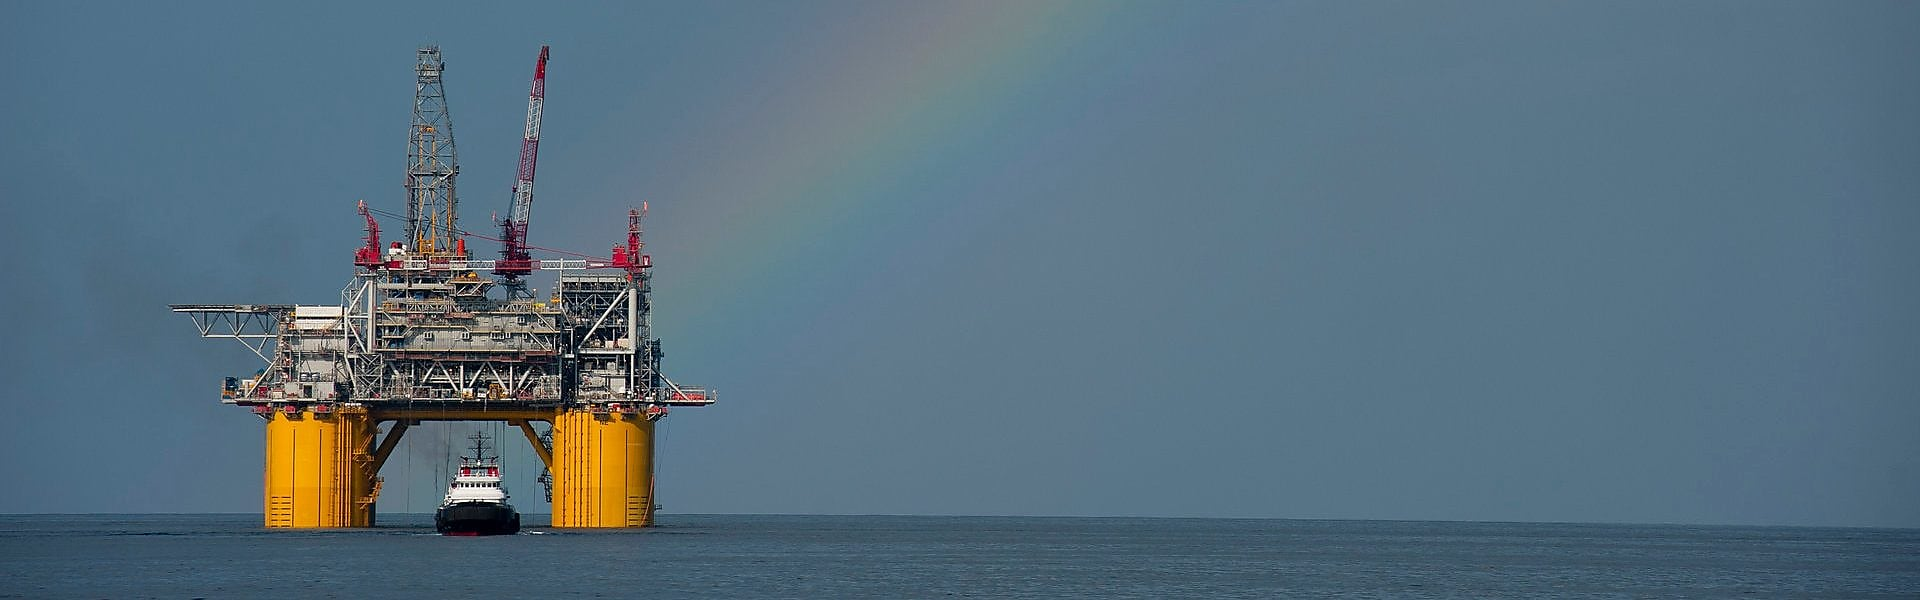 Mars B Platform in the Gulf of Mexico with a rainbow overhead